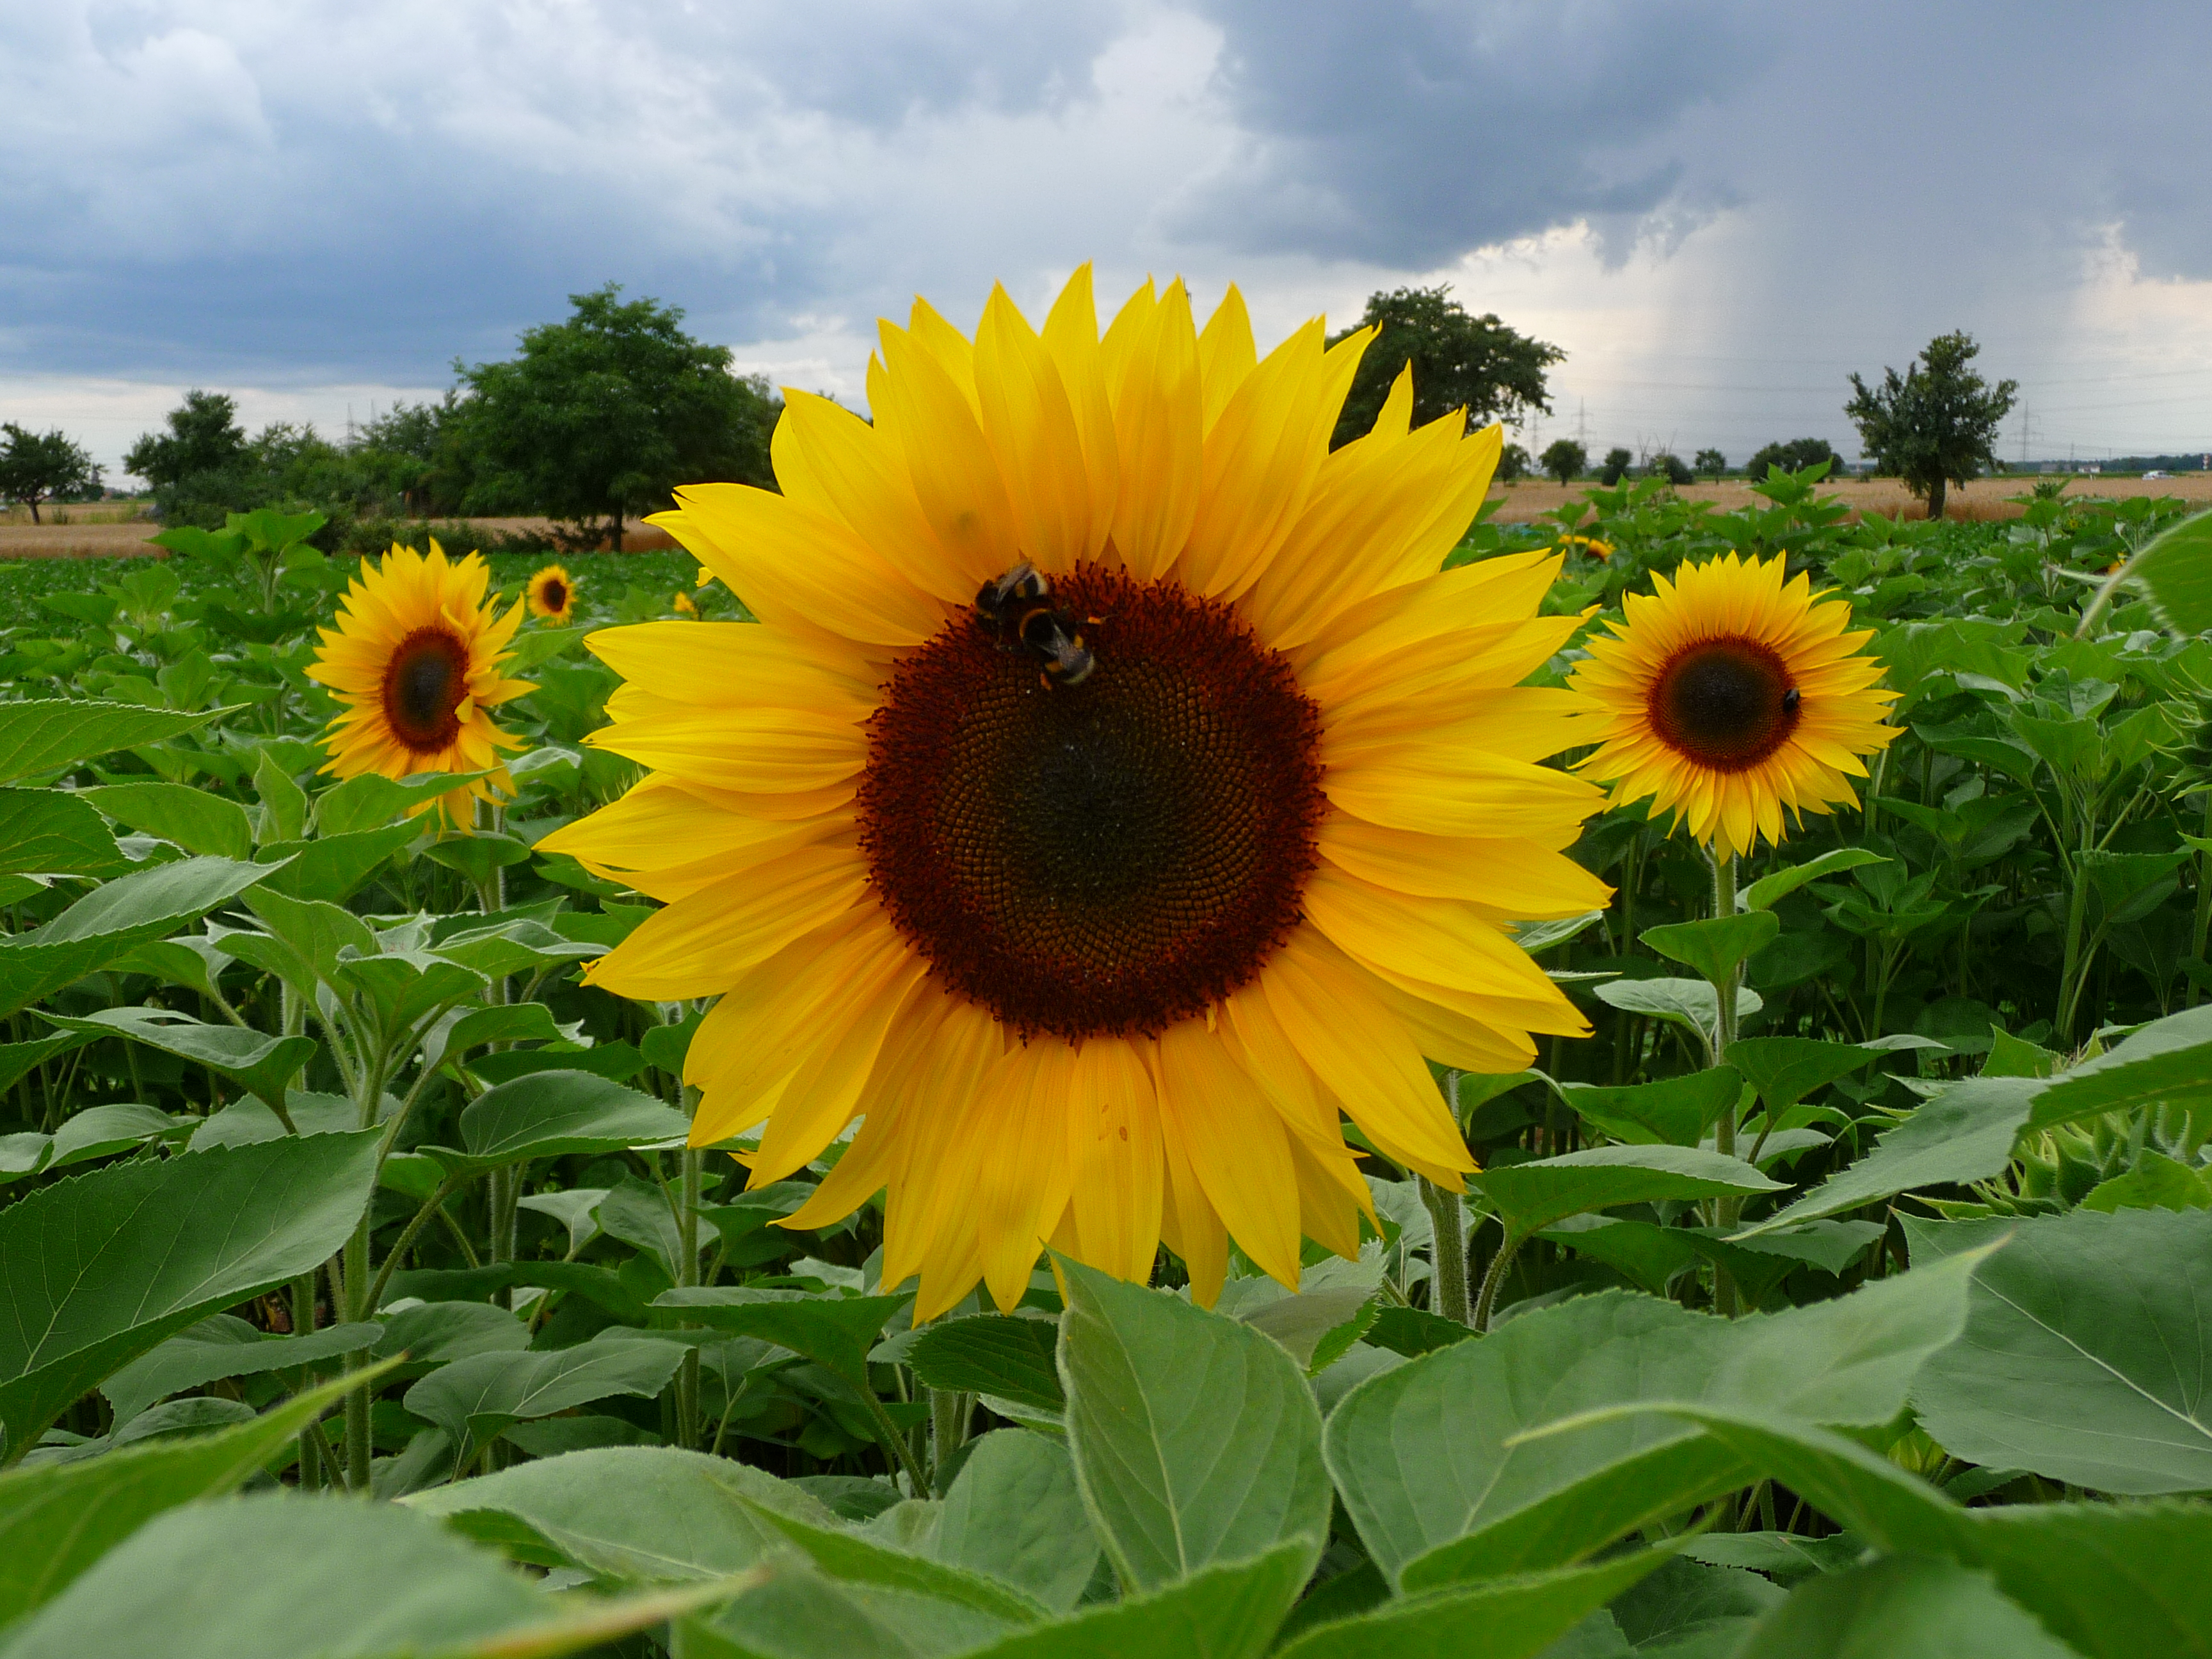 Cultivated Sunflowers and Their Wild Relatives – awkward botany